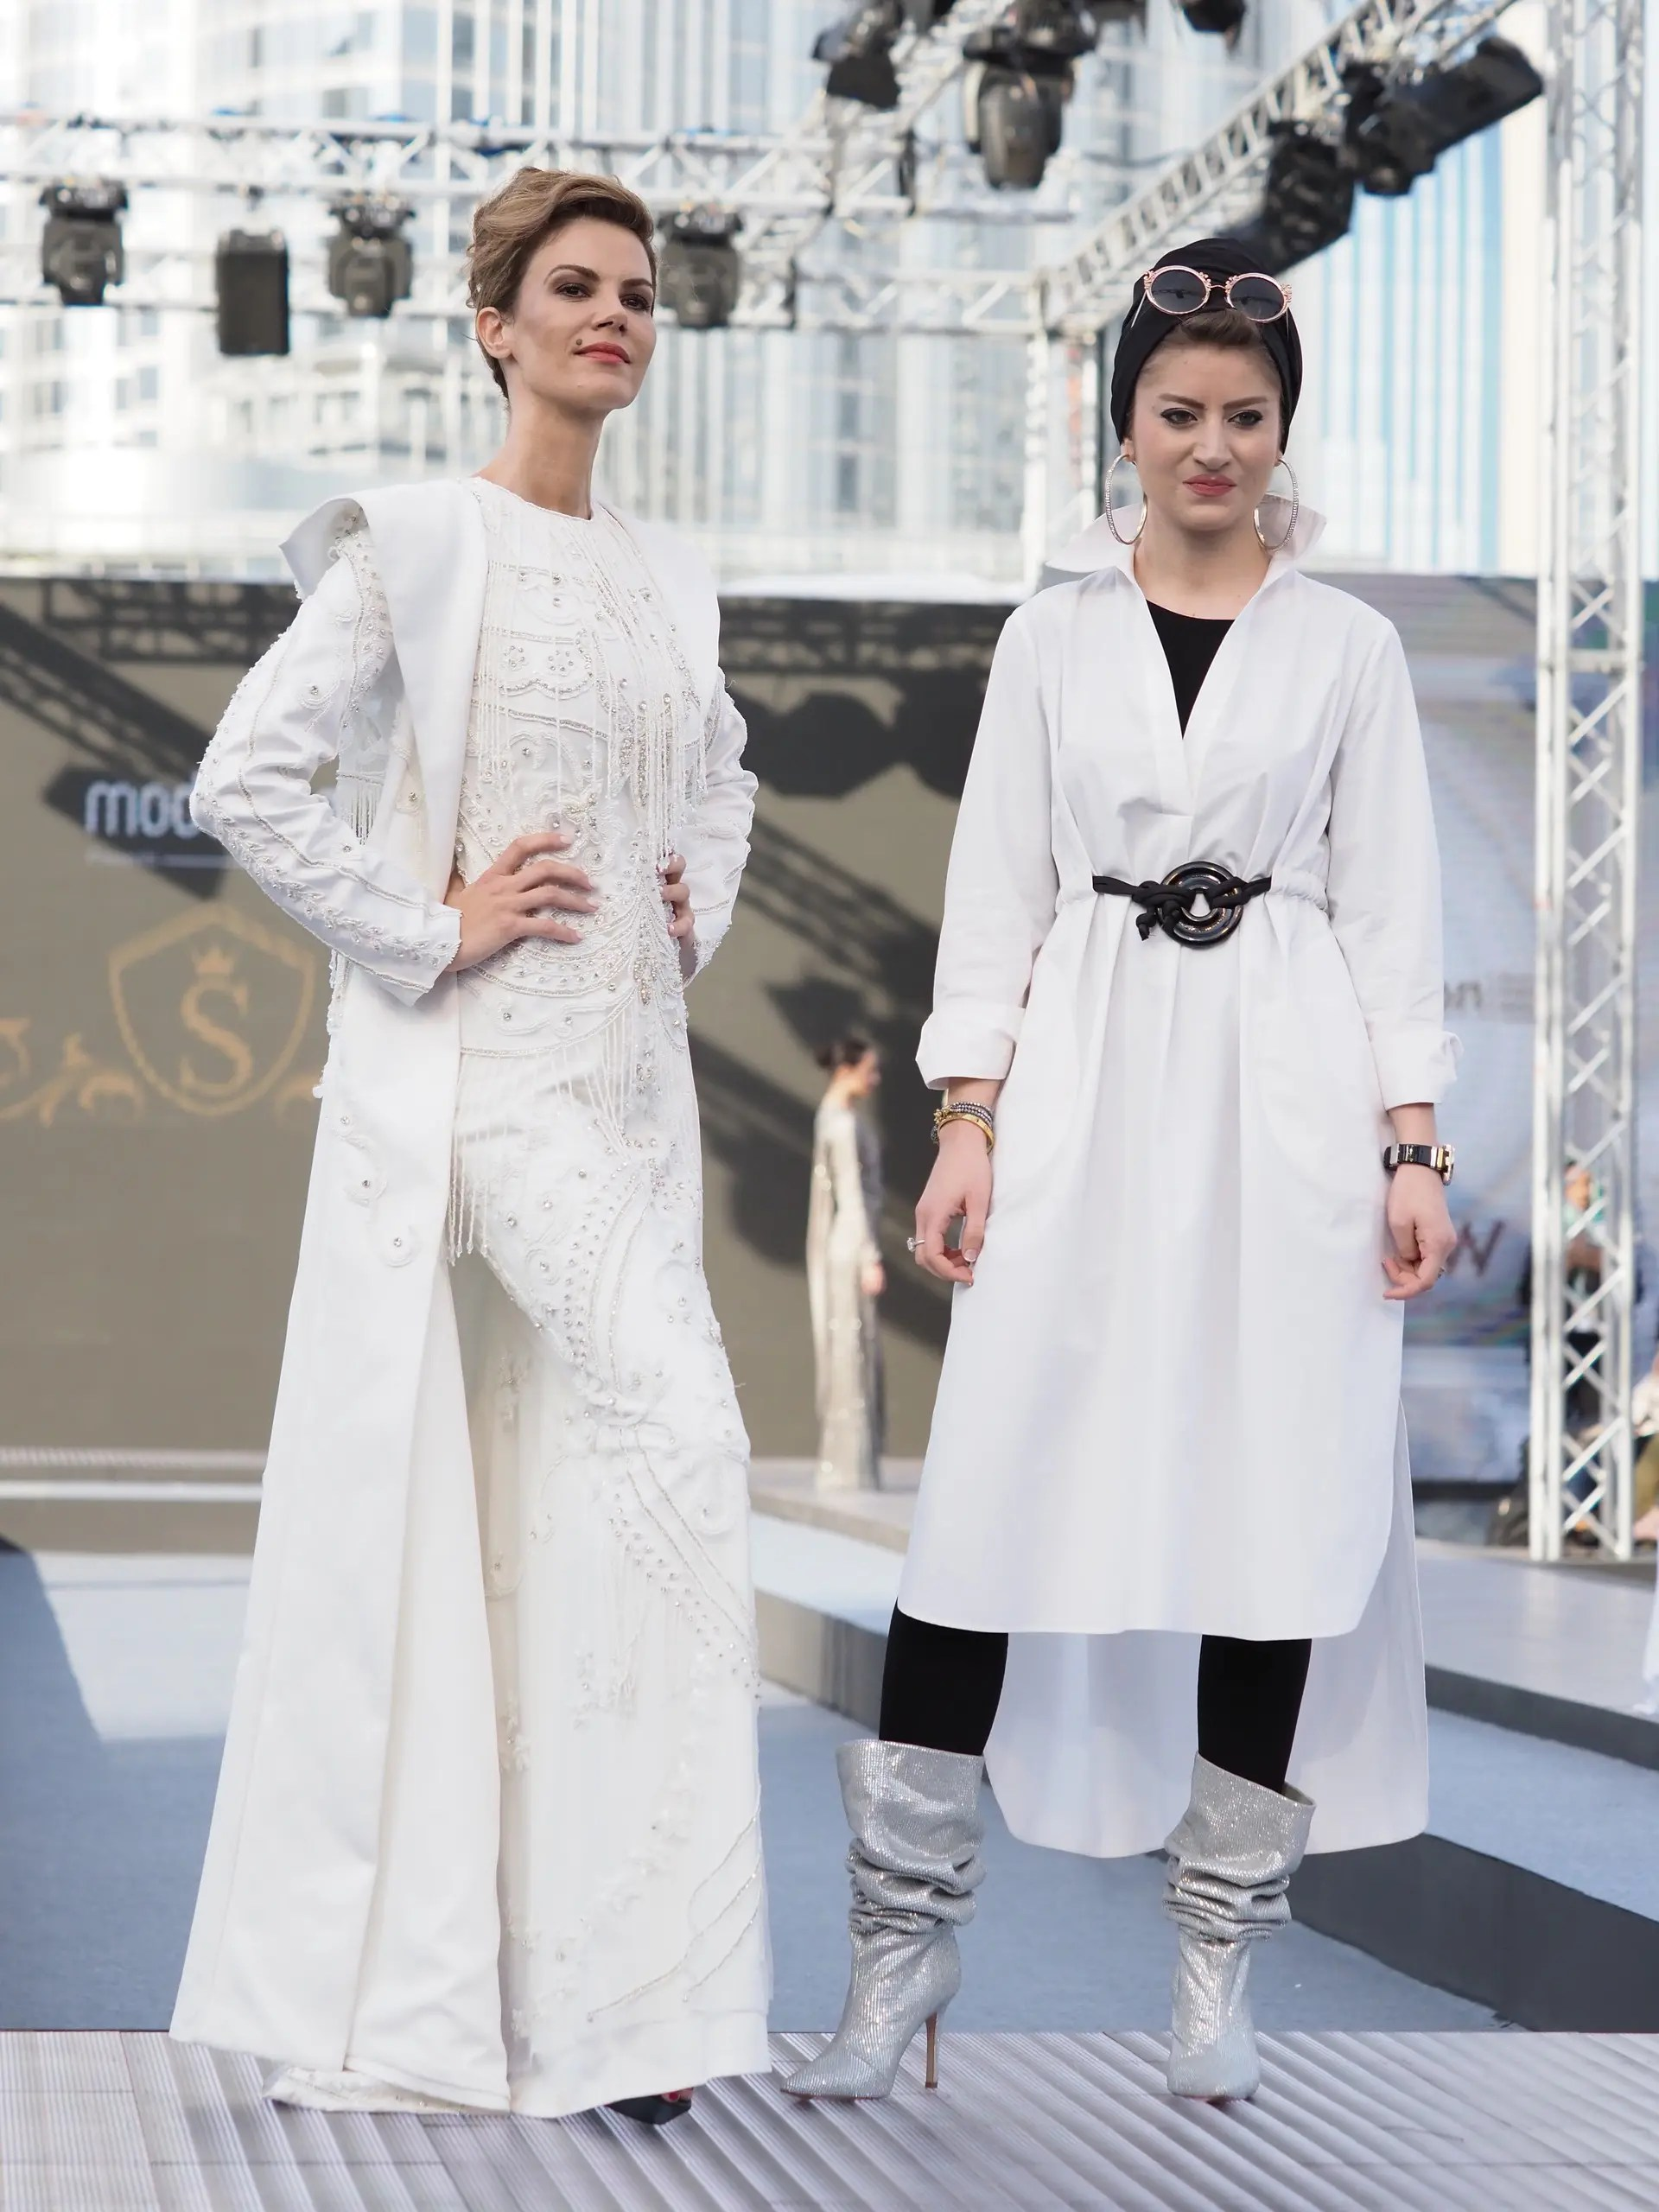 The 10 best looks from Dubai Modest Fashion Week   Al Arabiya English A favourite with e commerce modest fashion site  Modanisa customers   Turkish label Selma Sari offers elegance and comfort in both casual styles  and